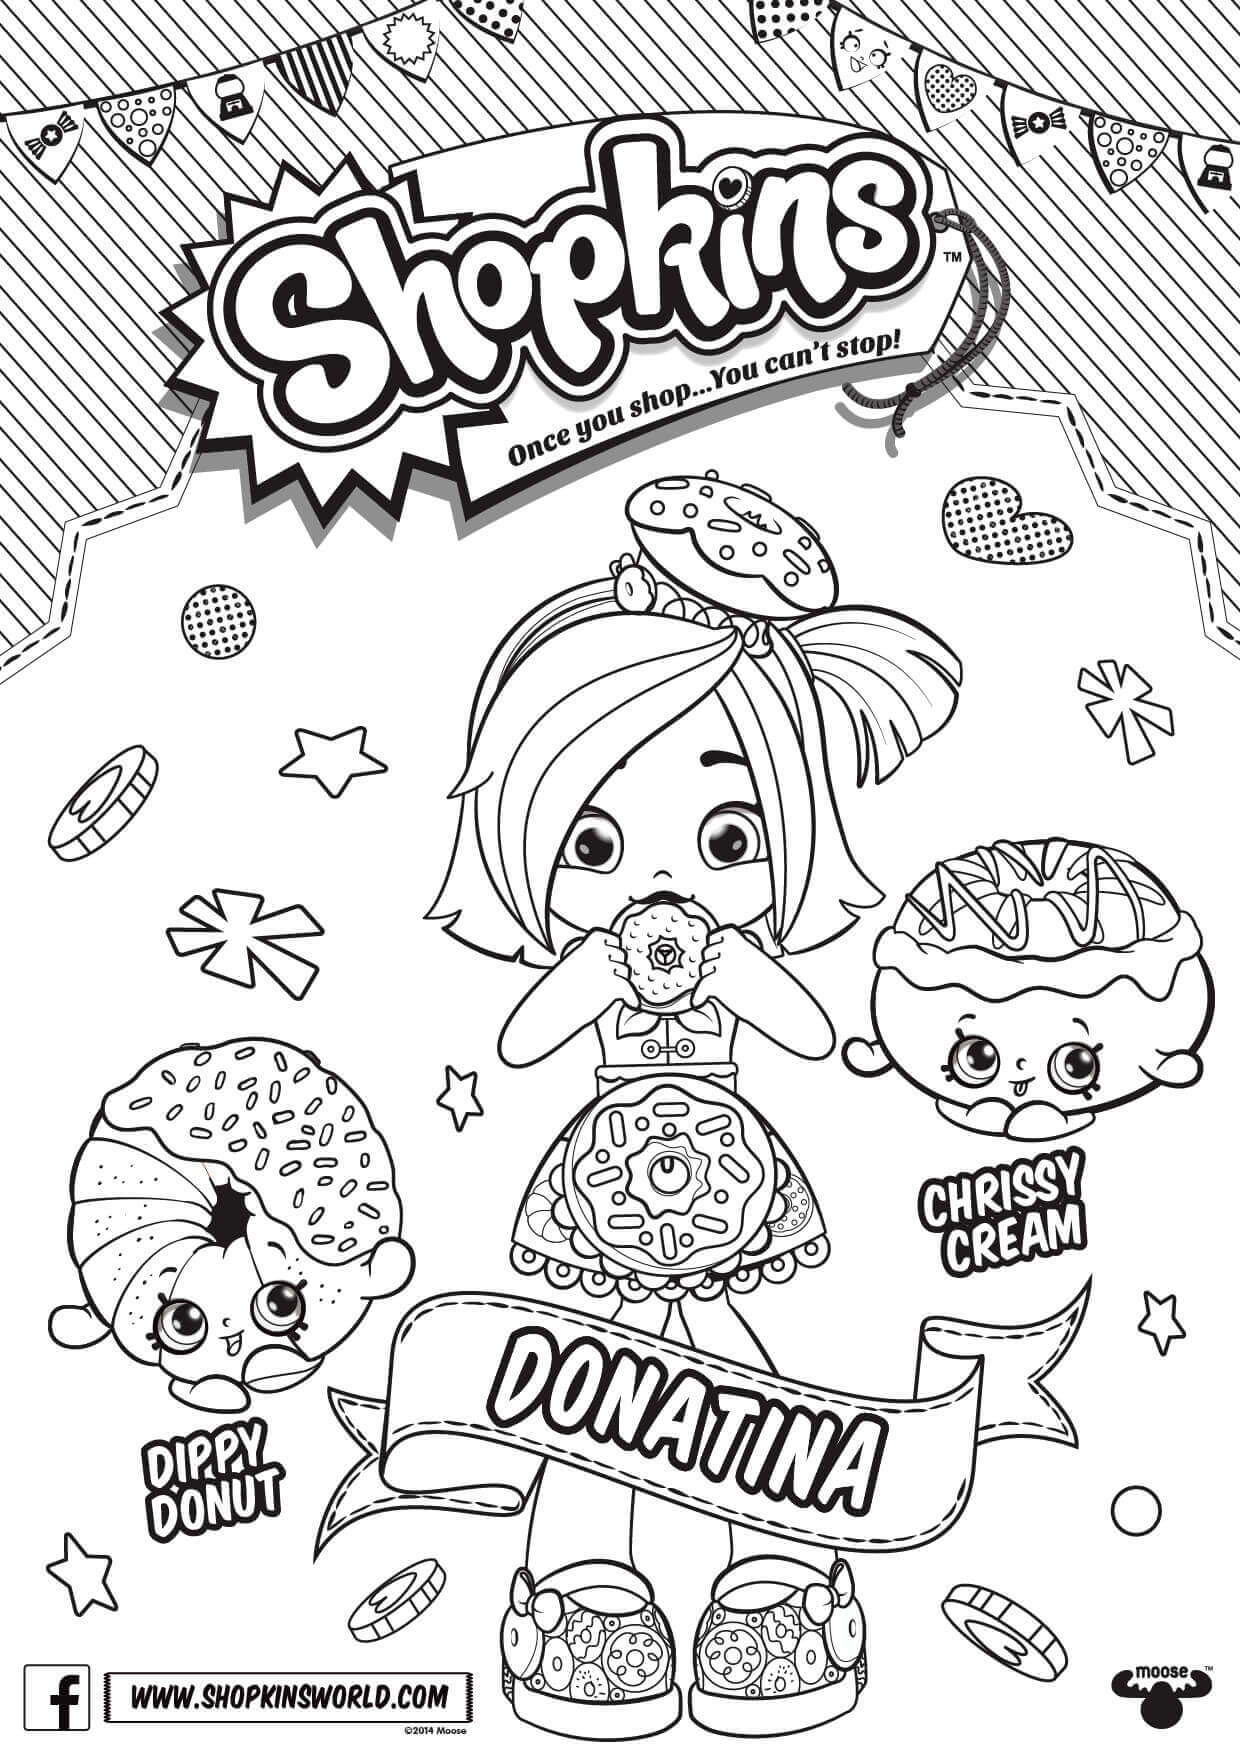 Shopkins Season 6 Donatina Shoppies Coloring Page